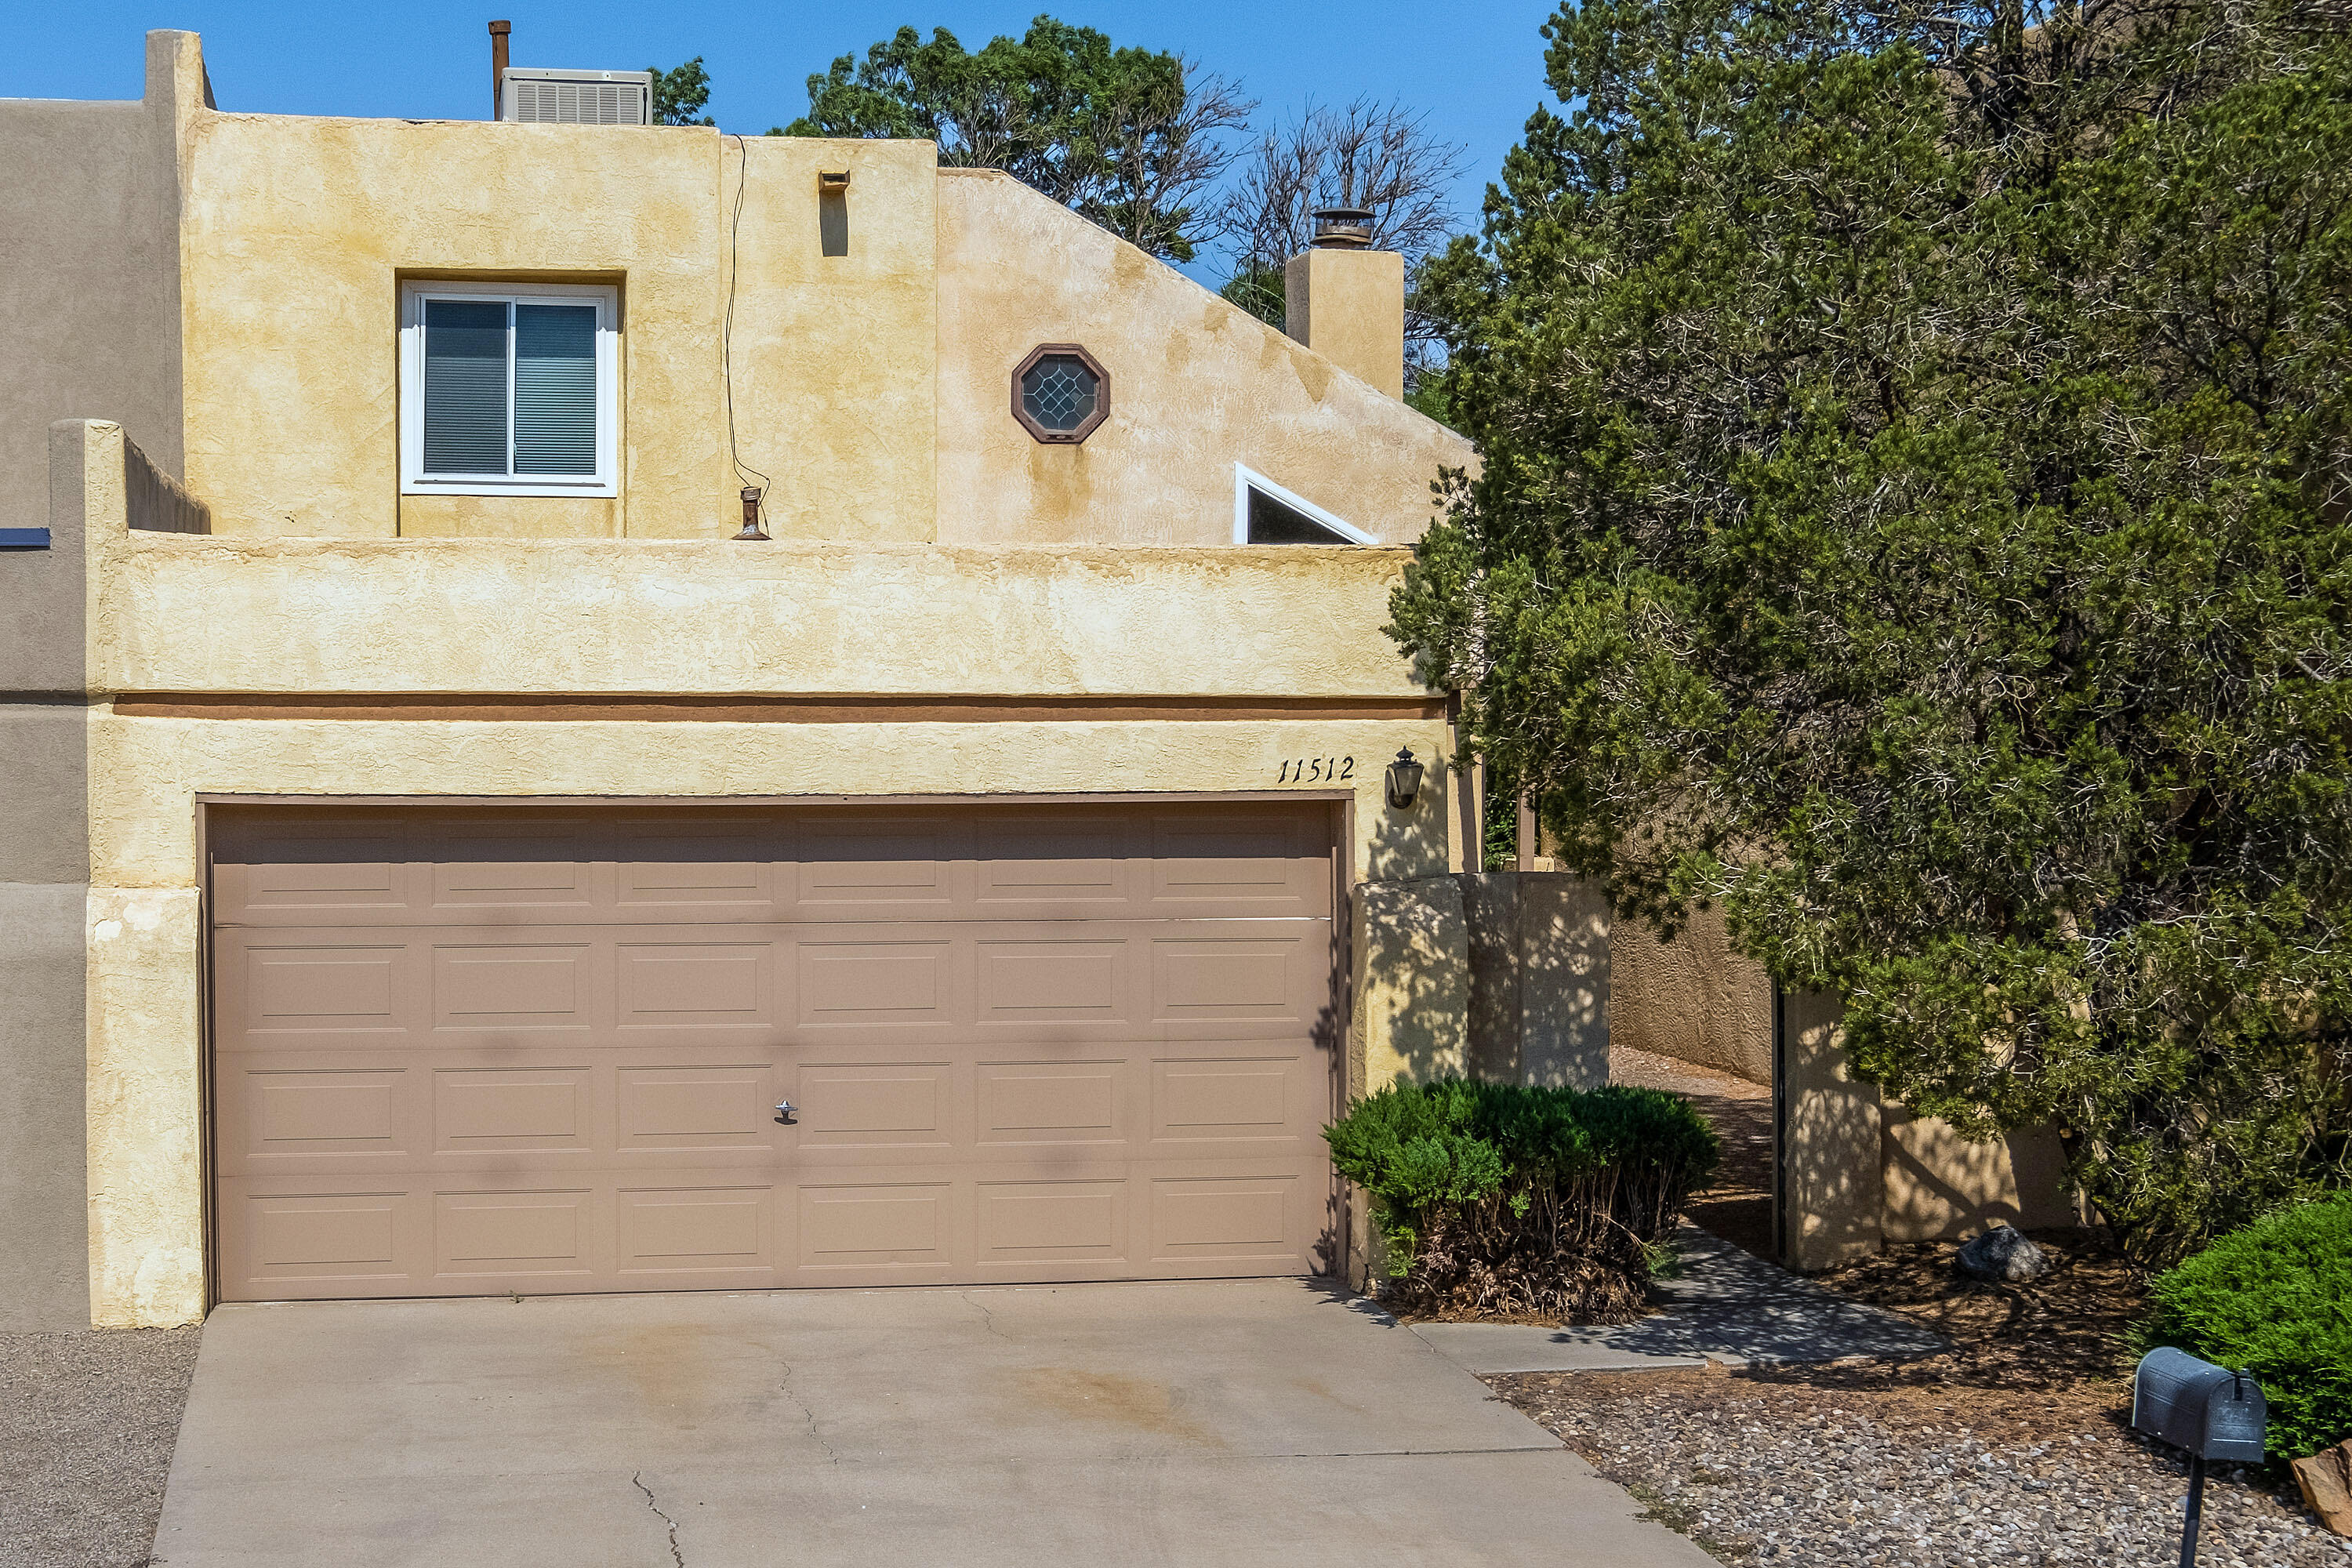 Townhome living with out the HOA! Easy commute to base, Labs and Medical from Juan Tabo and Menaul. Well maintained 3 Br 1.5 Ba and 2 car garage. Soaring ceilings with sky lights, fireplace for cozy winter nights. Tucked away in a cul-de-sac yet easy access to shopping and entertainment!